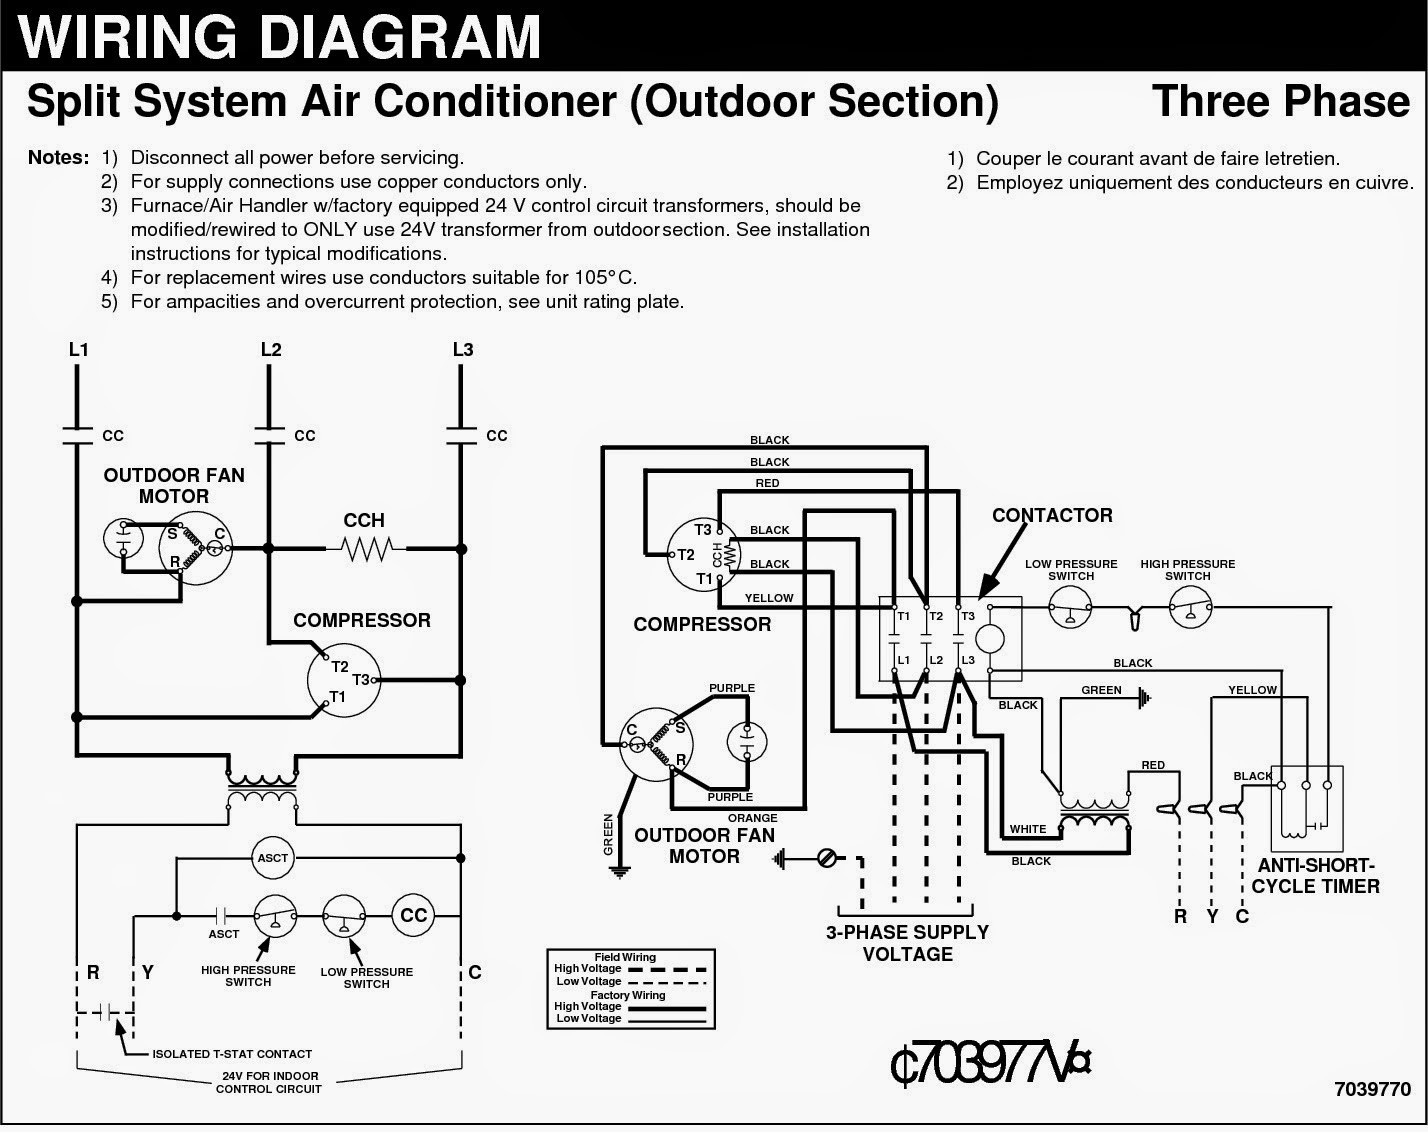 Air Compressor With Regulator Wiring Diagram Diagrams For Plumbing 3 Phase Piping Todays Rh 9 8 4 1813weddingbarn Com